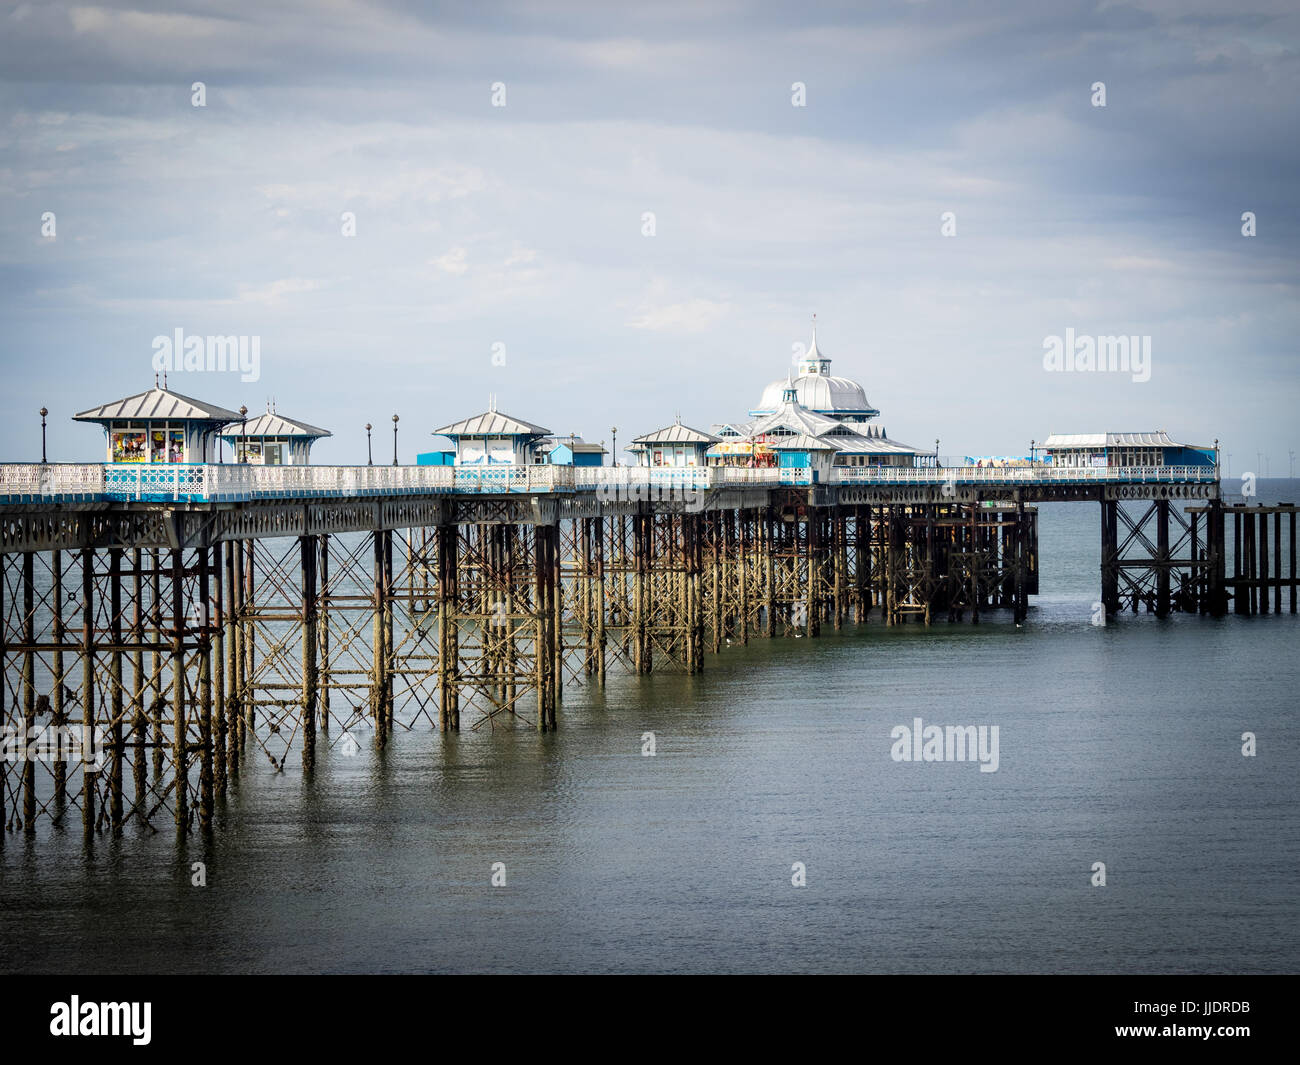 Llandudno Pier in the North Wales seaside resort of Llandudno. The current pier was opened in 1877. - Stock Image